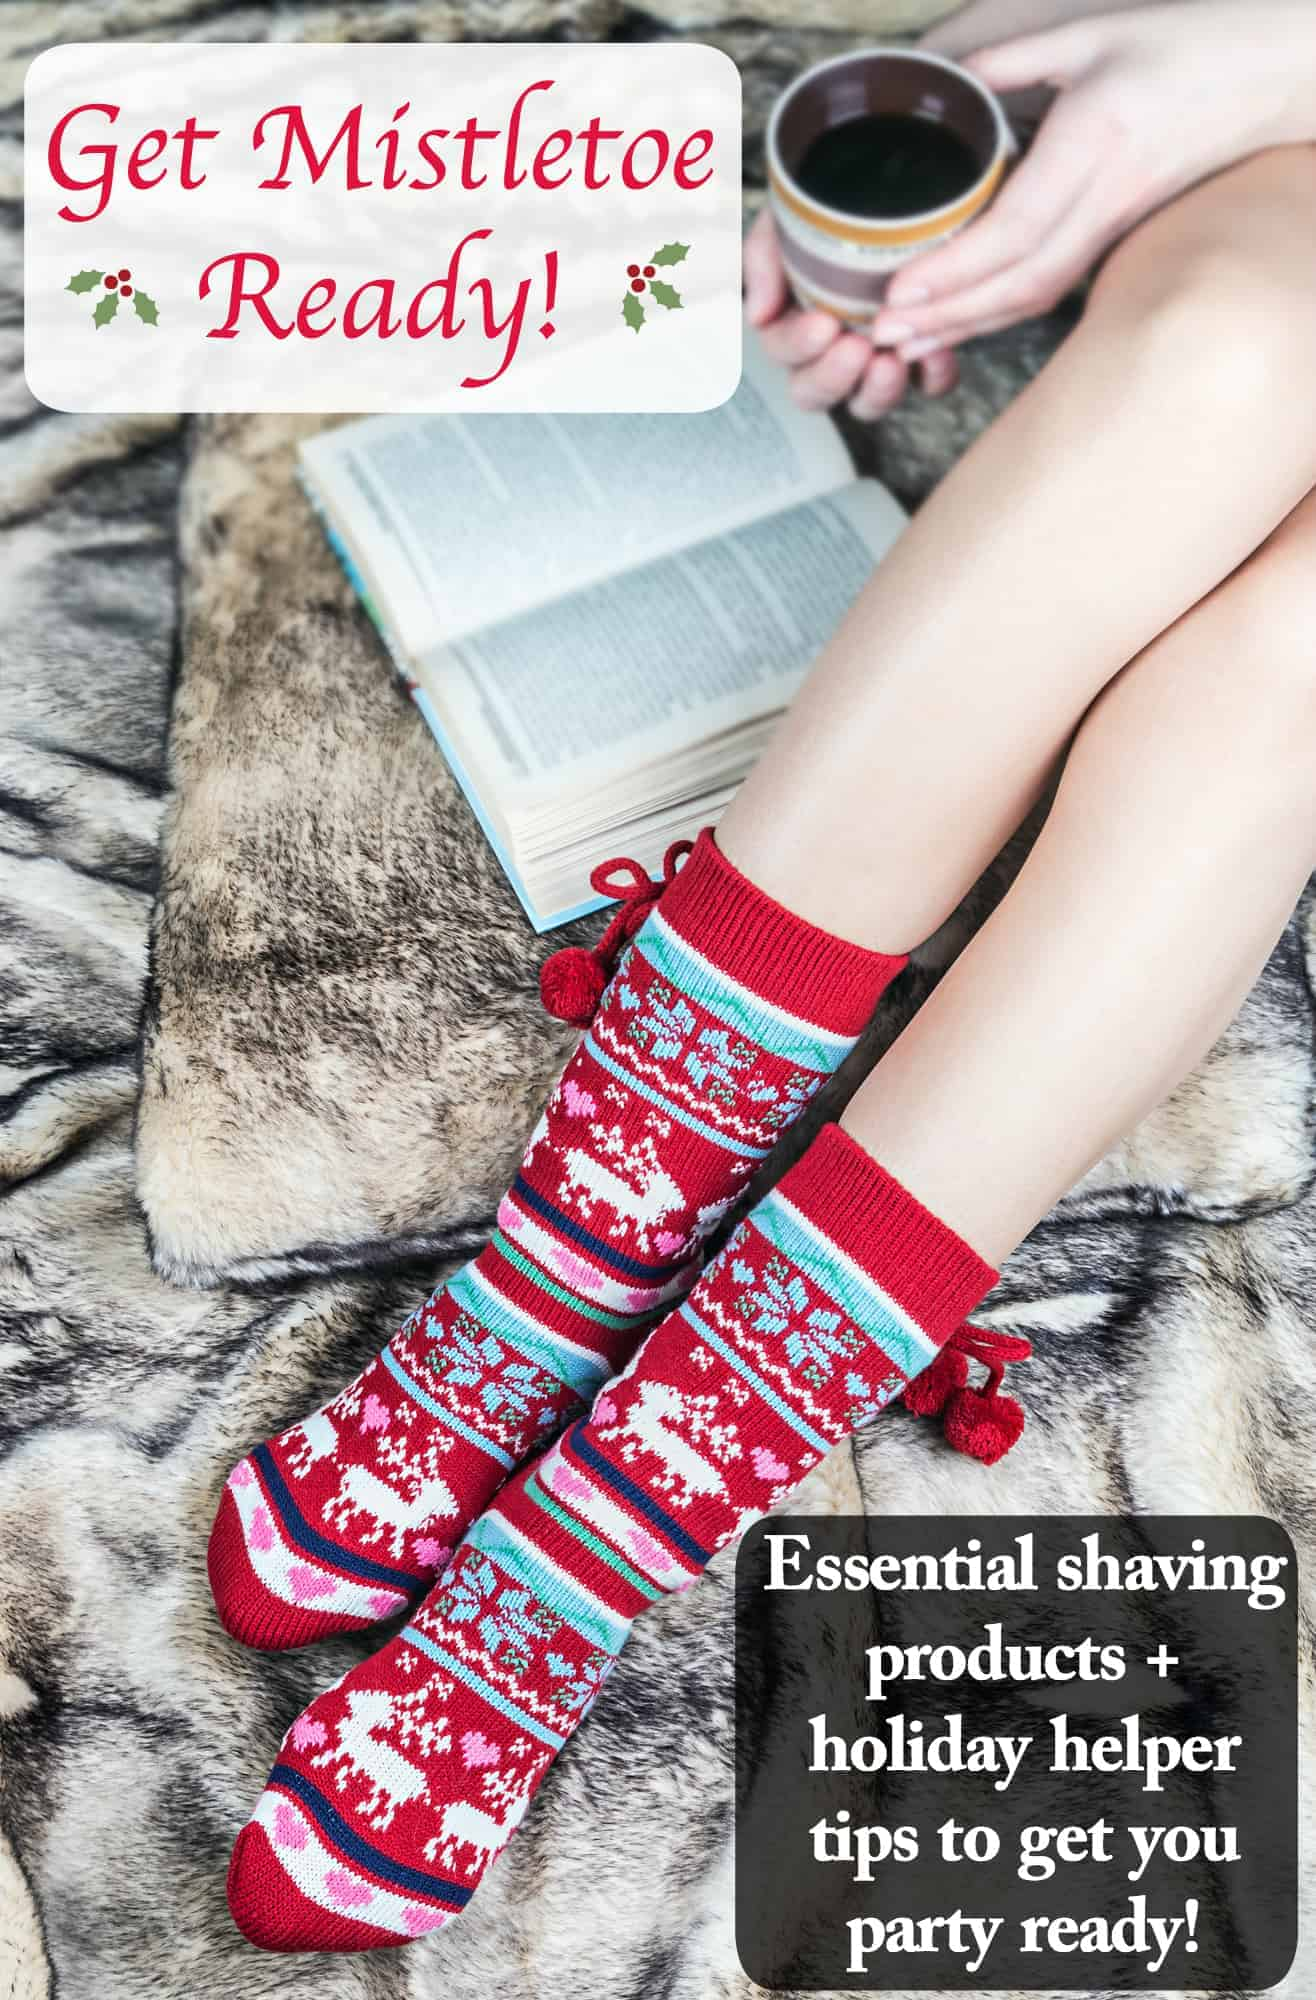 get mistletoe ready Essential shaving products holiday helper tips